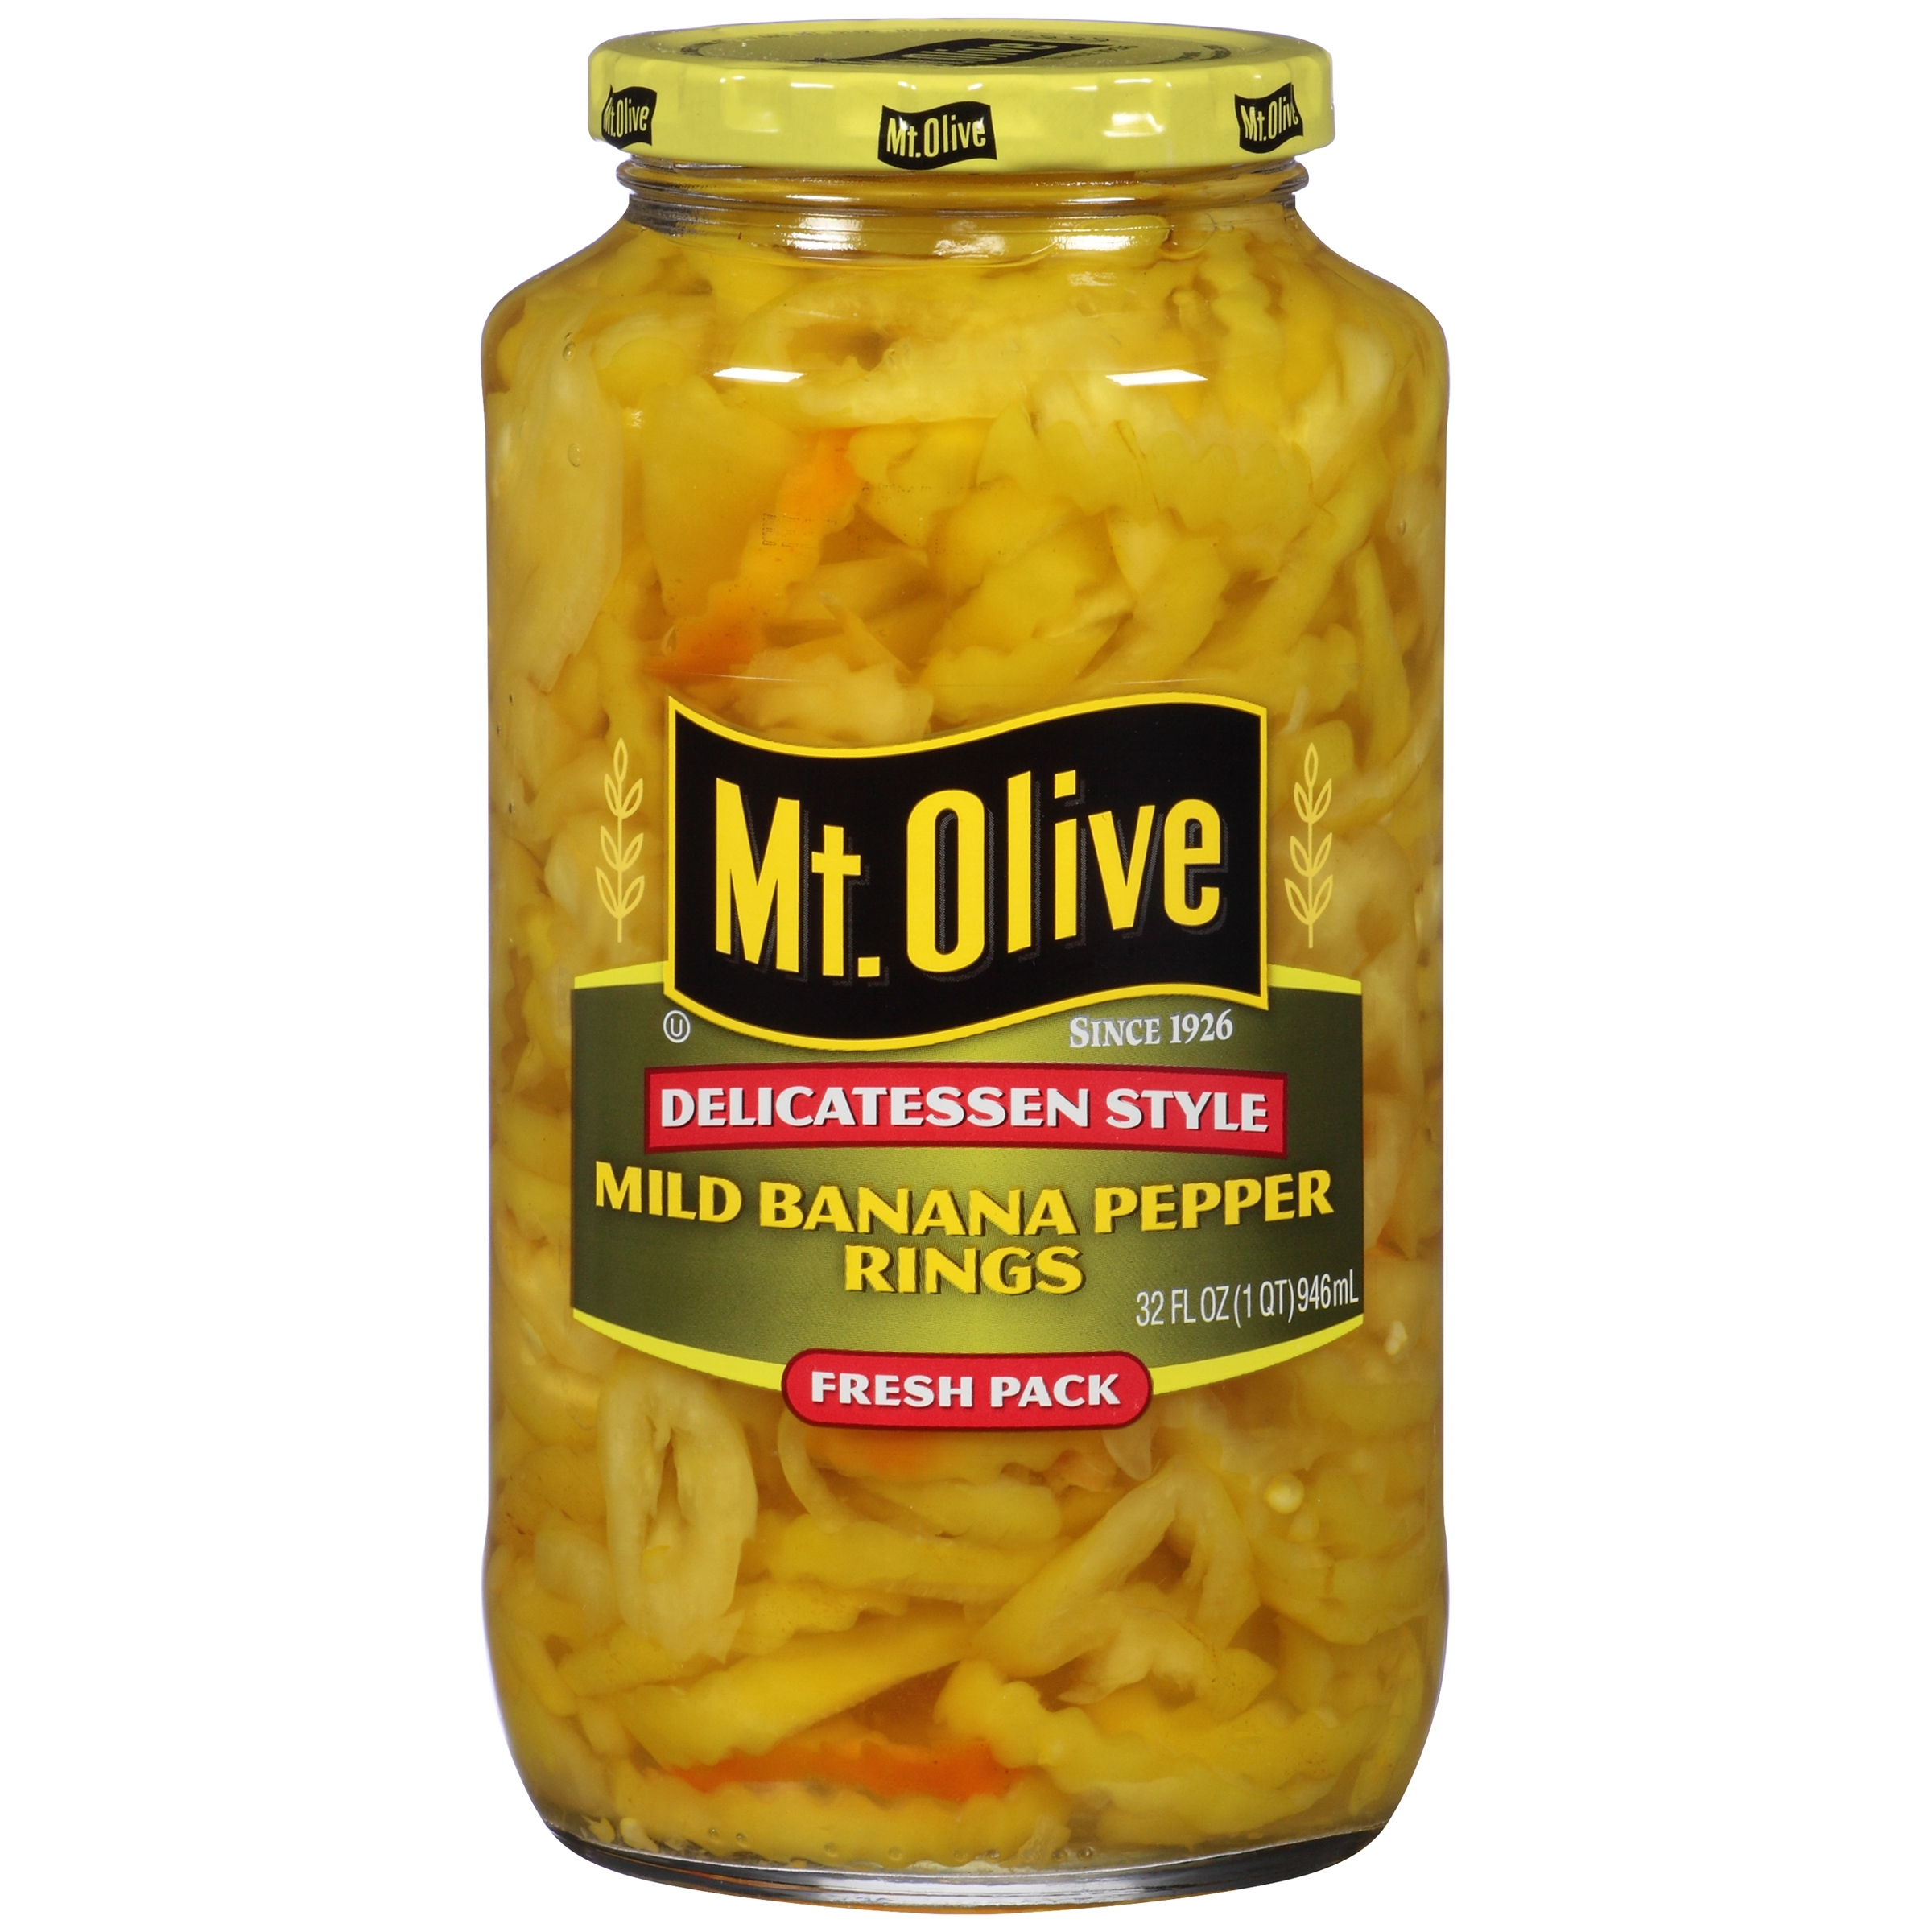 Mt. Olive Mild Banana Pepper Rings 32 fl. oz. Jar